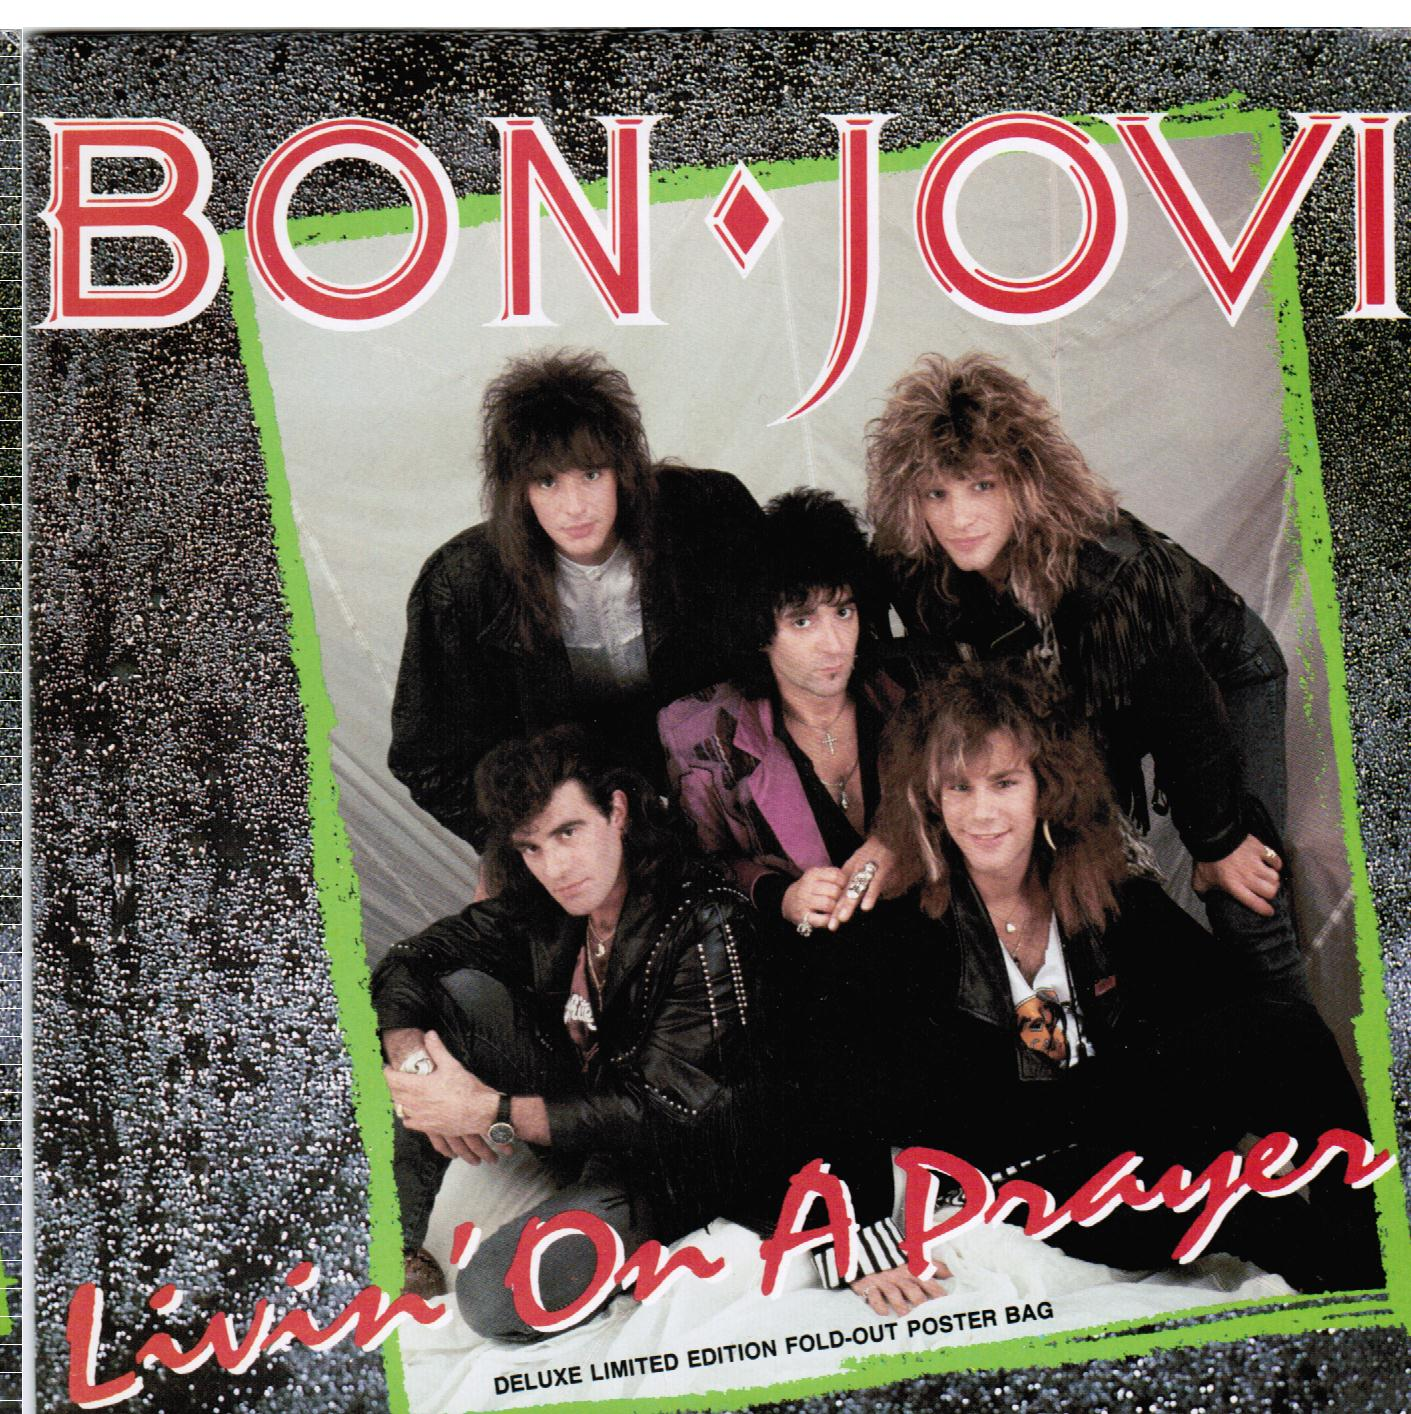 Bon Jovi | Livin on a prayer / wild in the streets (1986)